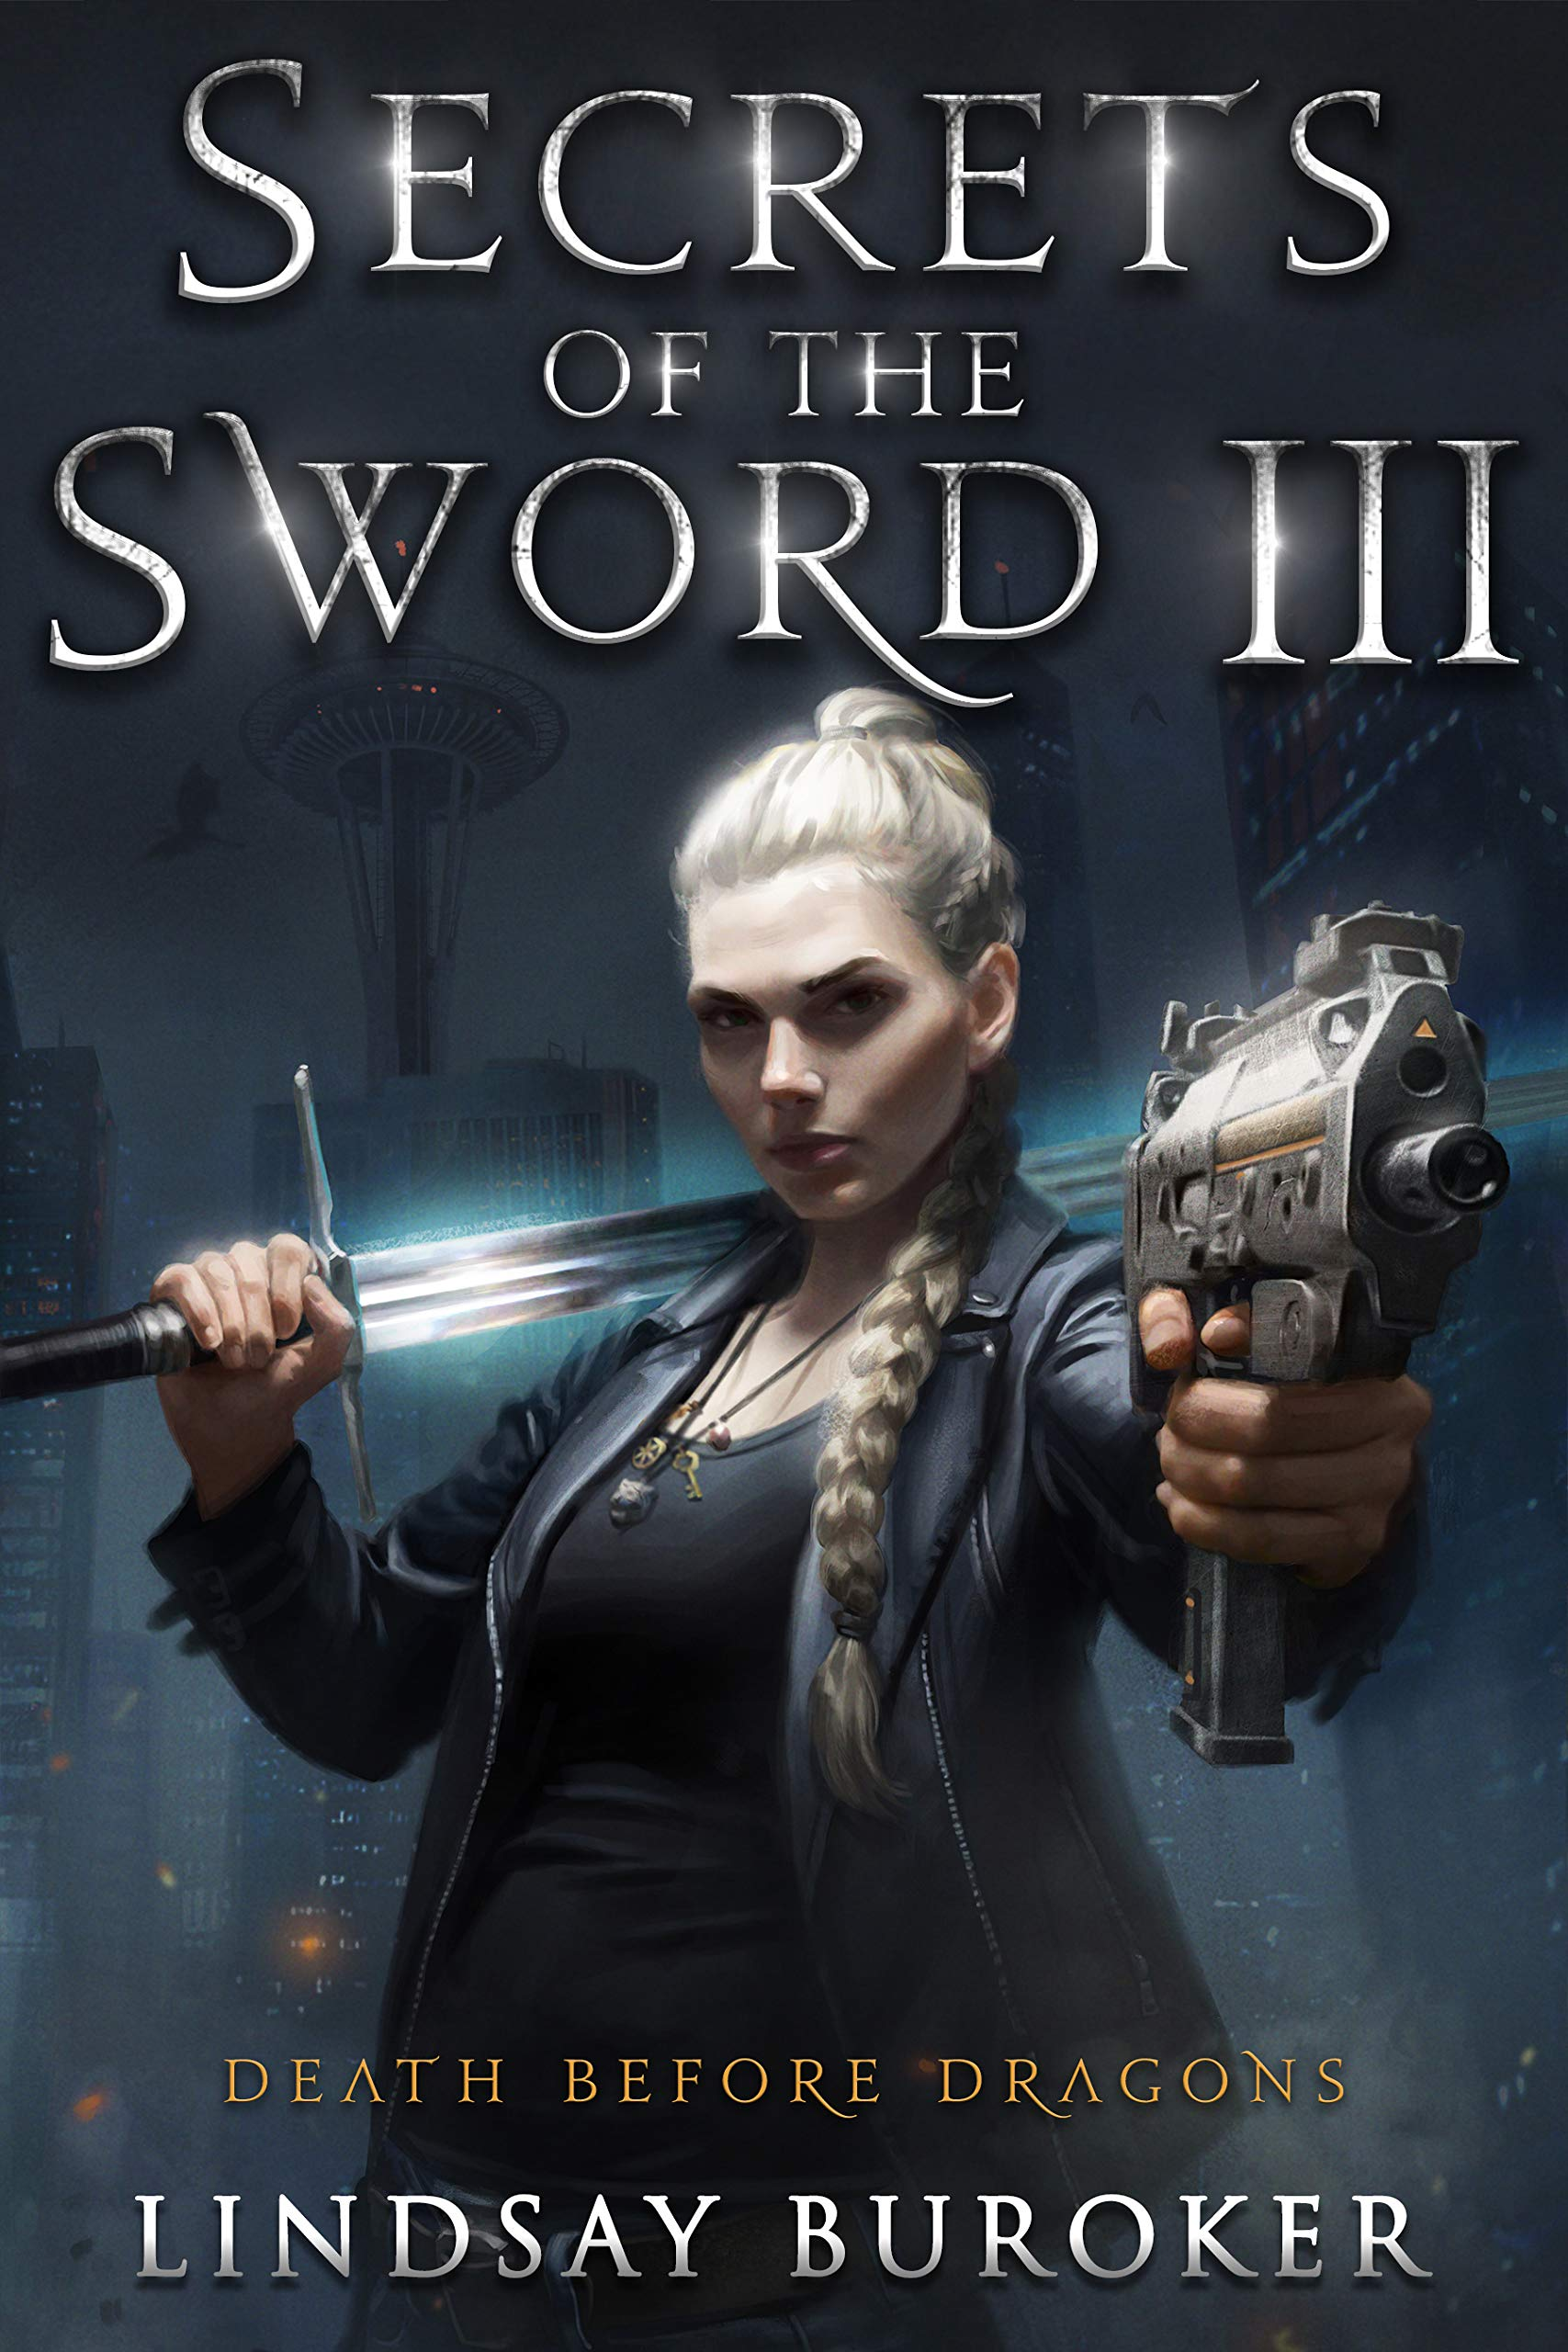 Secrets of the Sword III (Death Before Dragons #9)